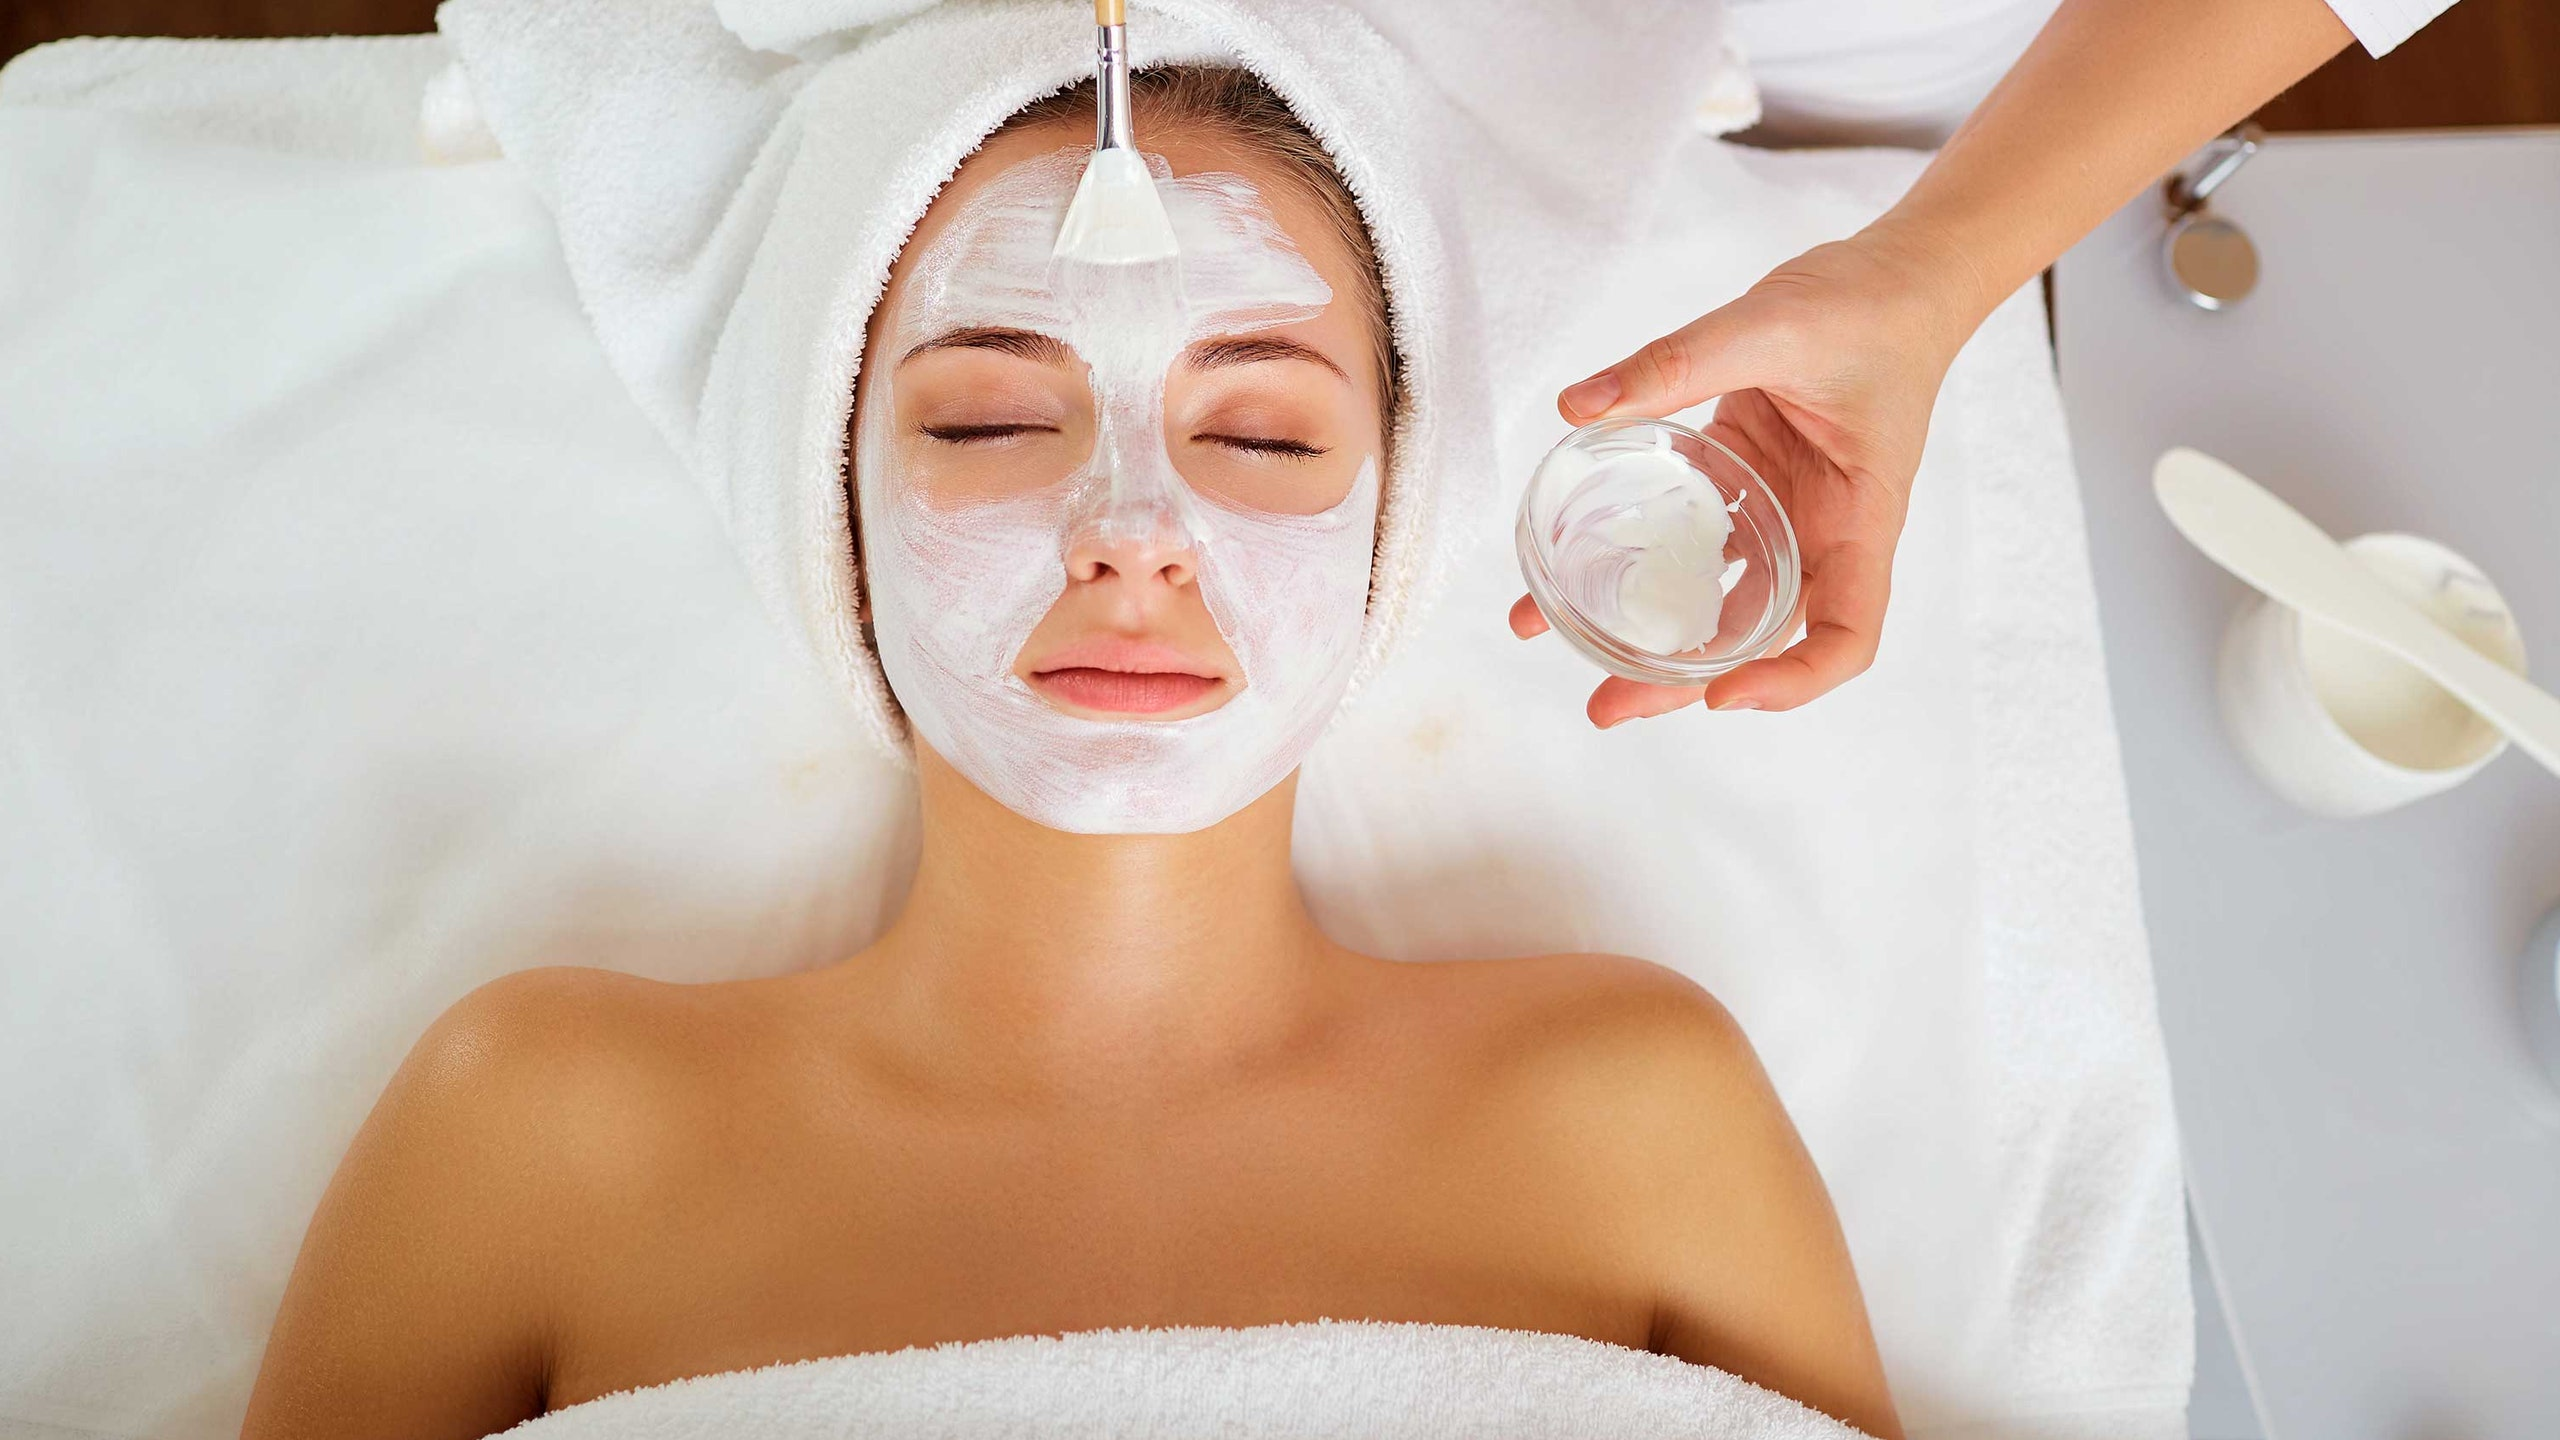 5 Best Facial Treatments For Different Skin Types